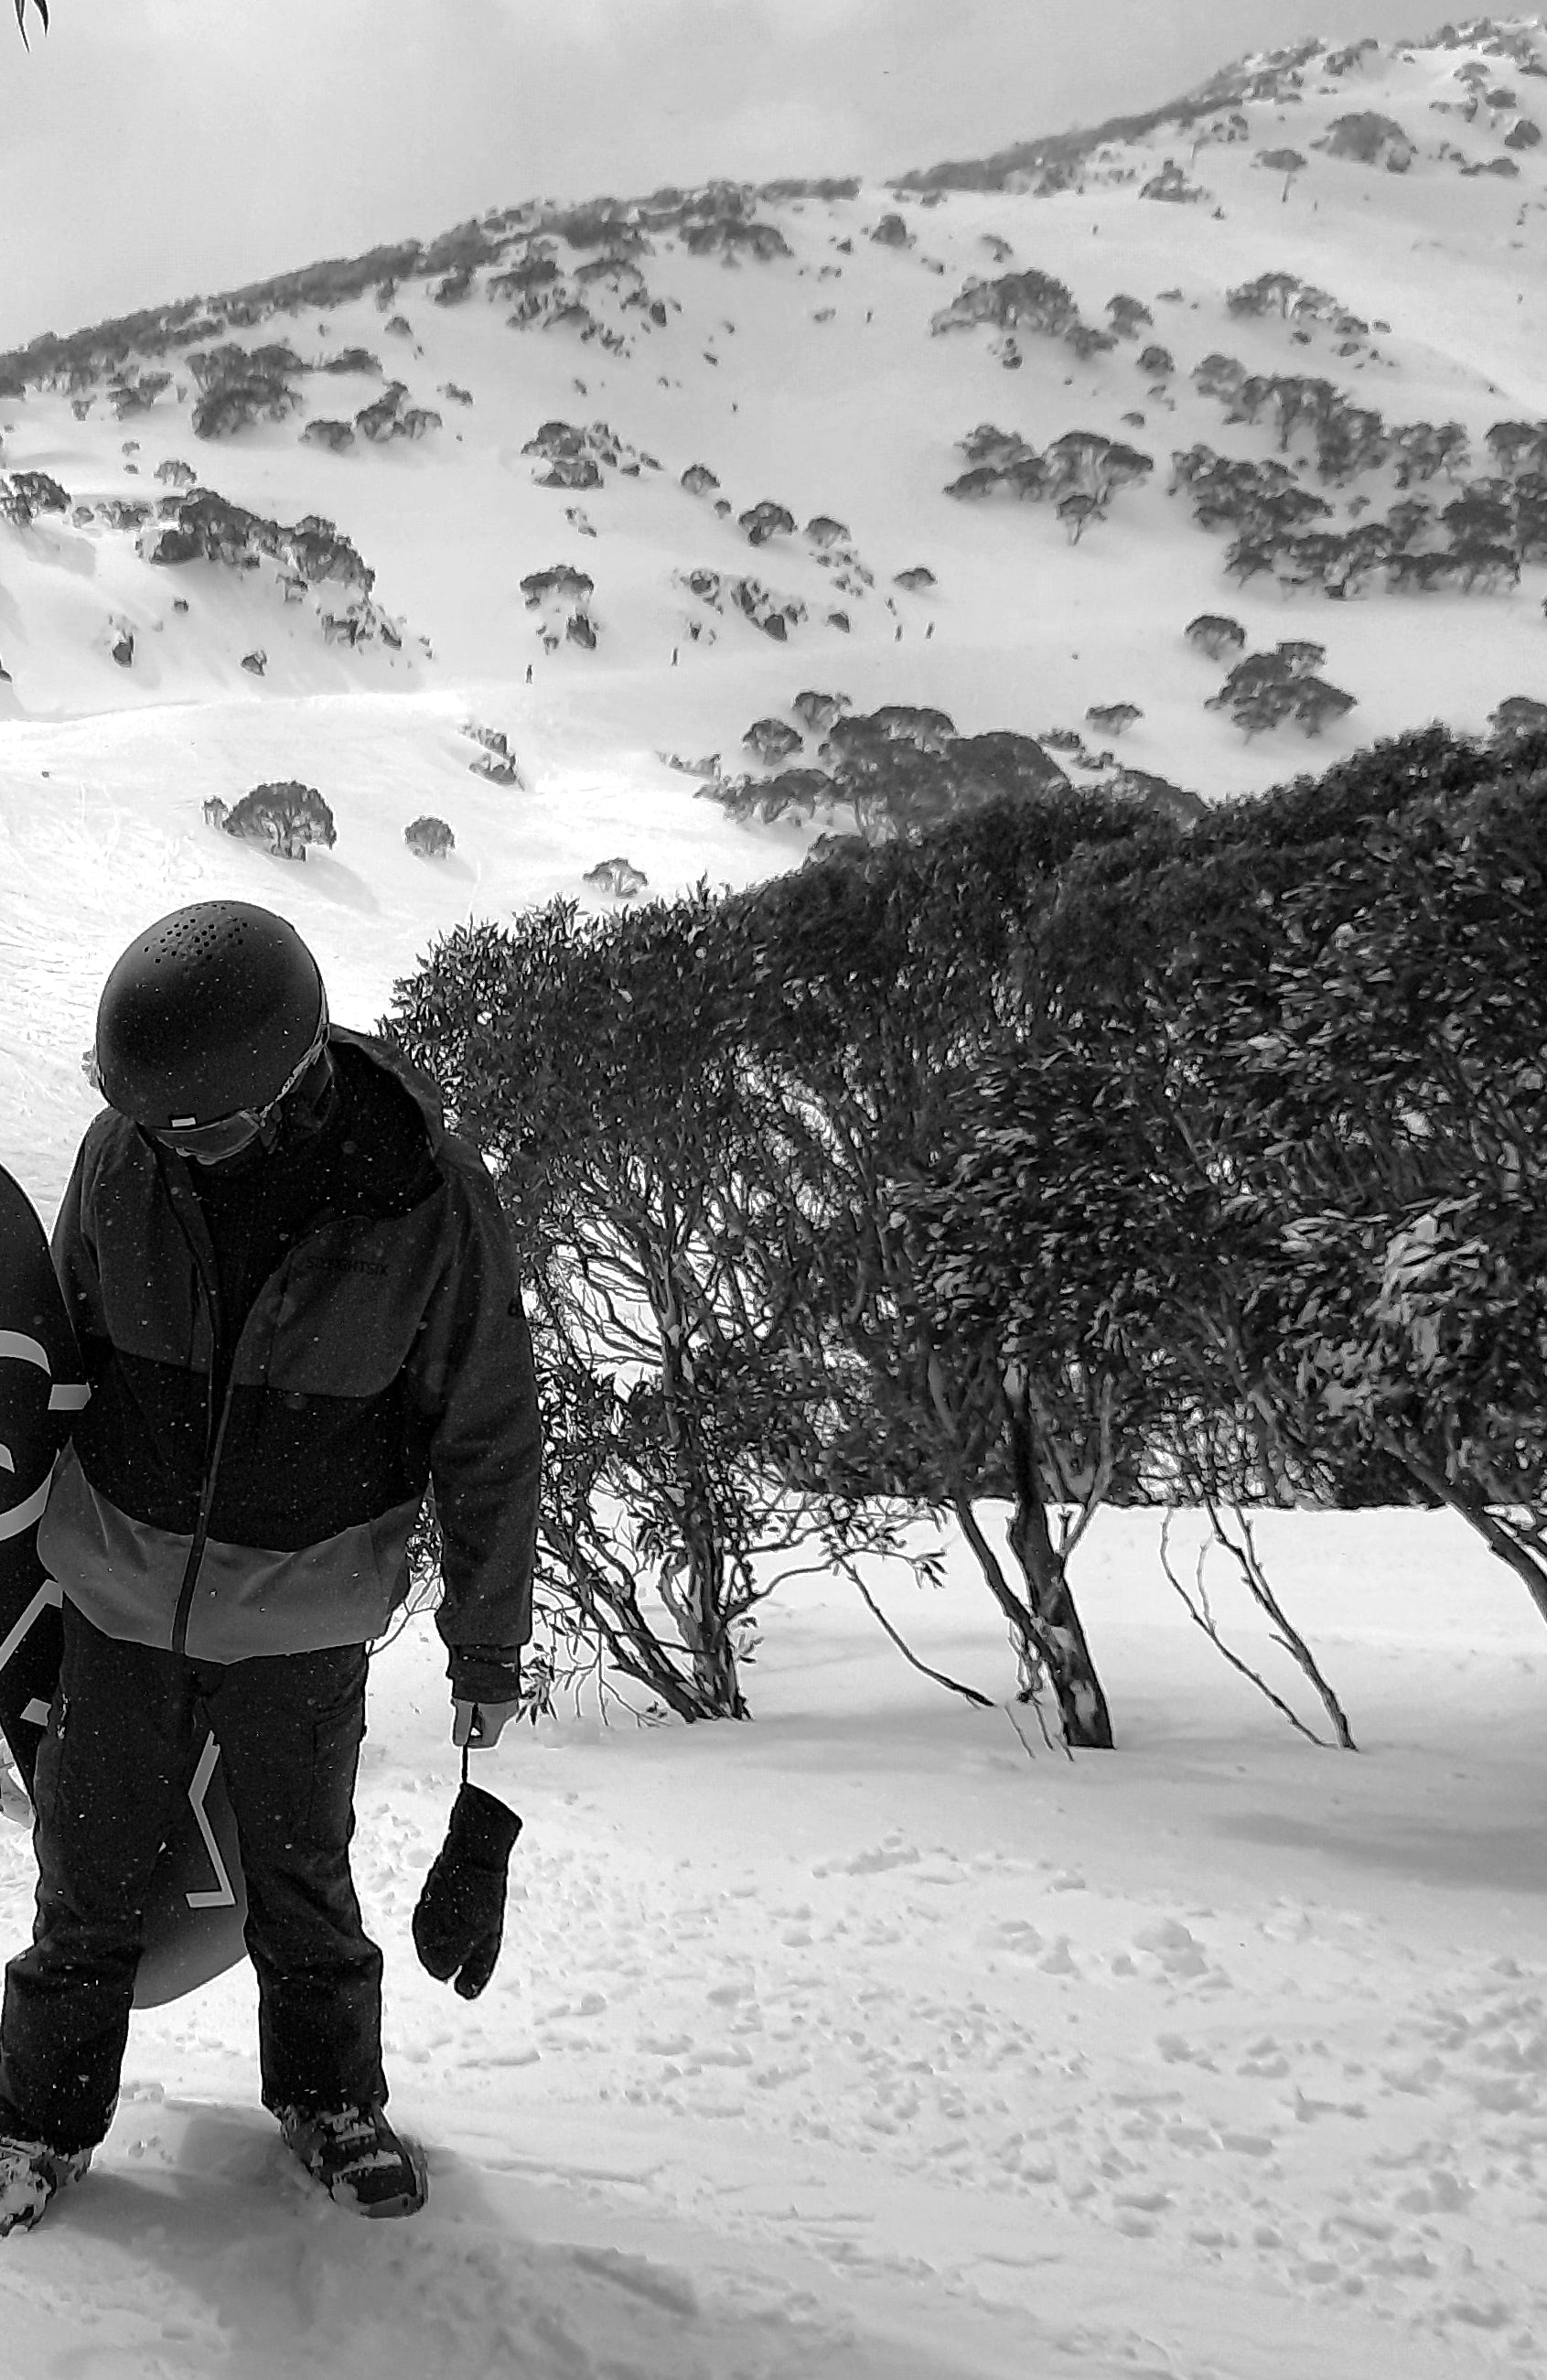 reily tong photography snowboarding snow perisher